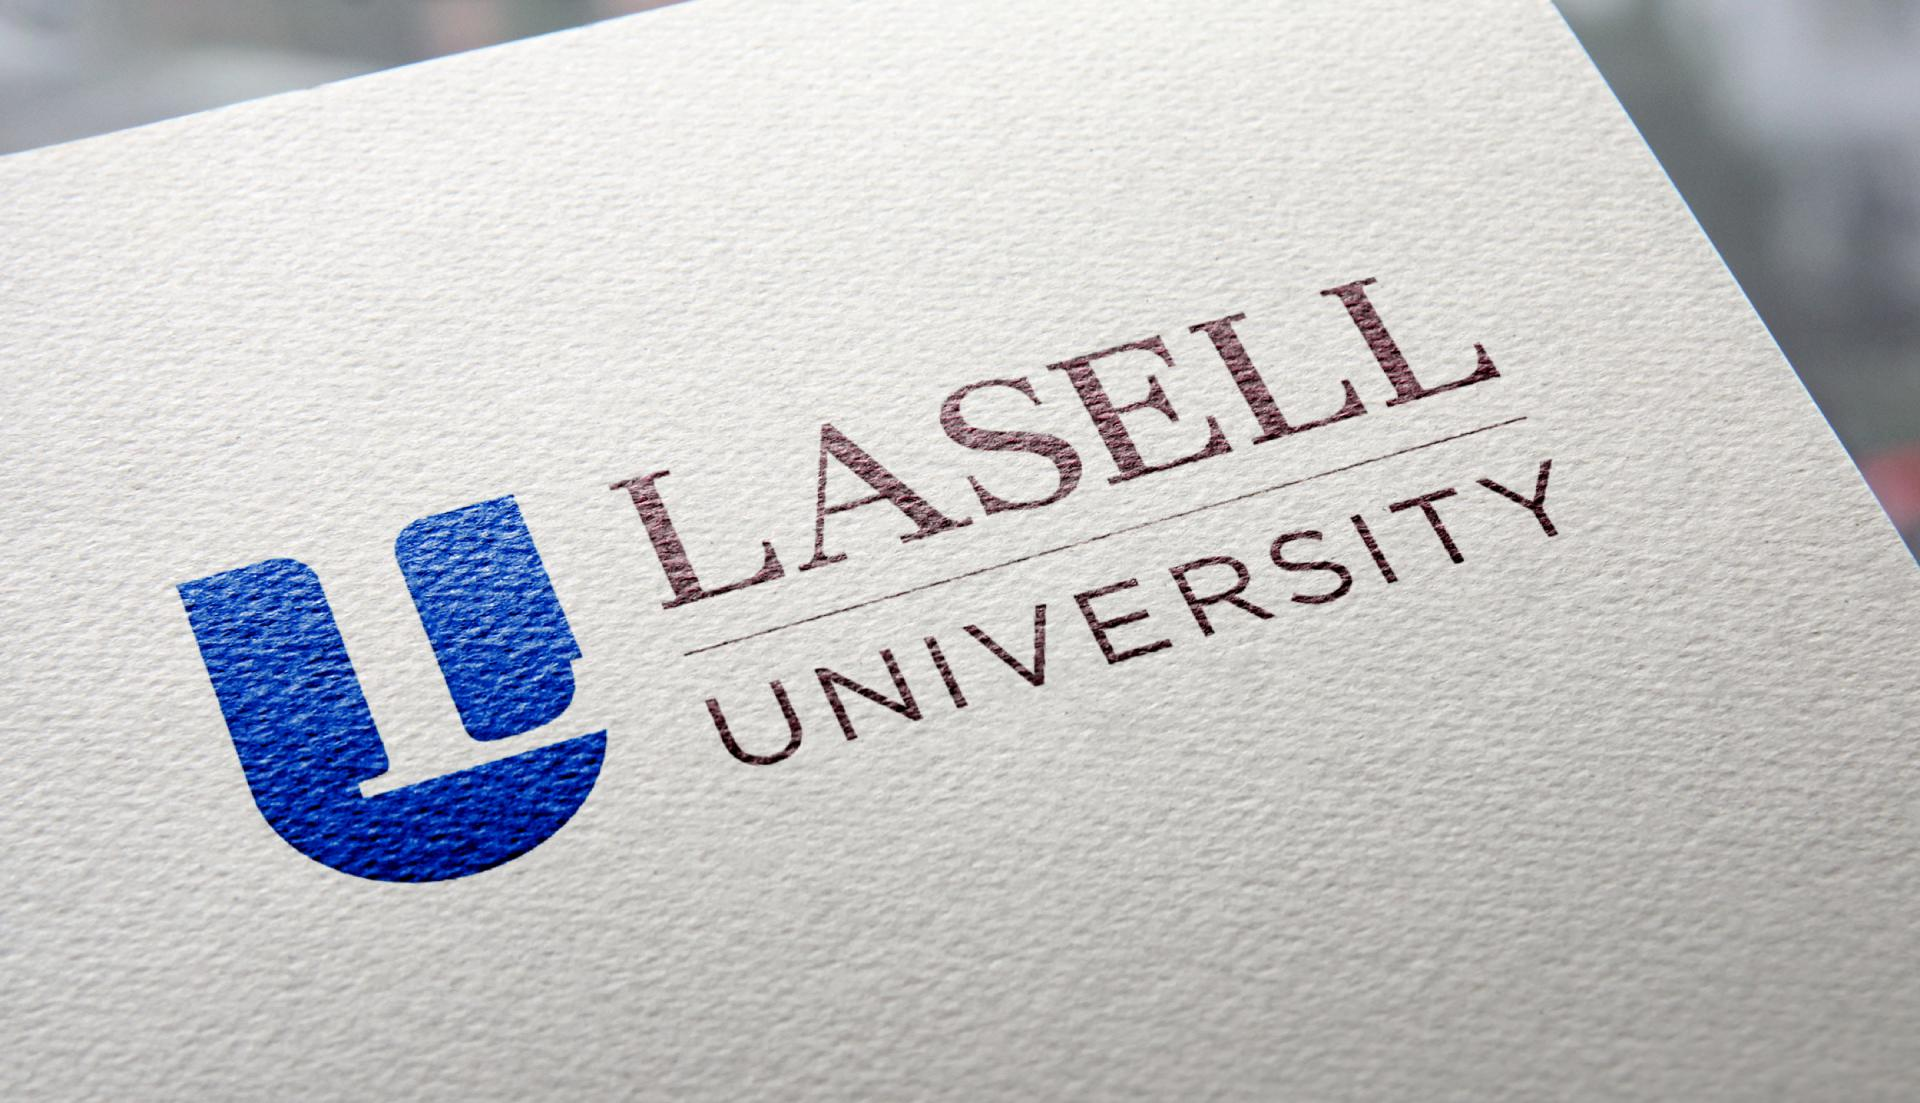 Lasell University logo on letterhead zoomed in.